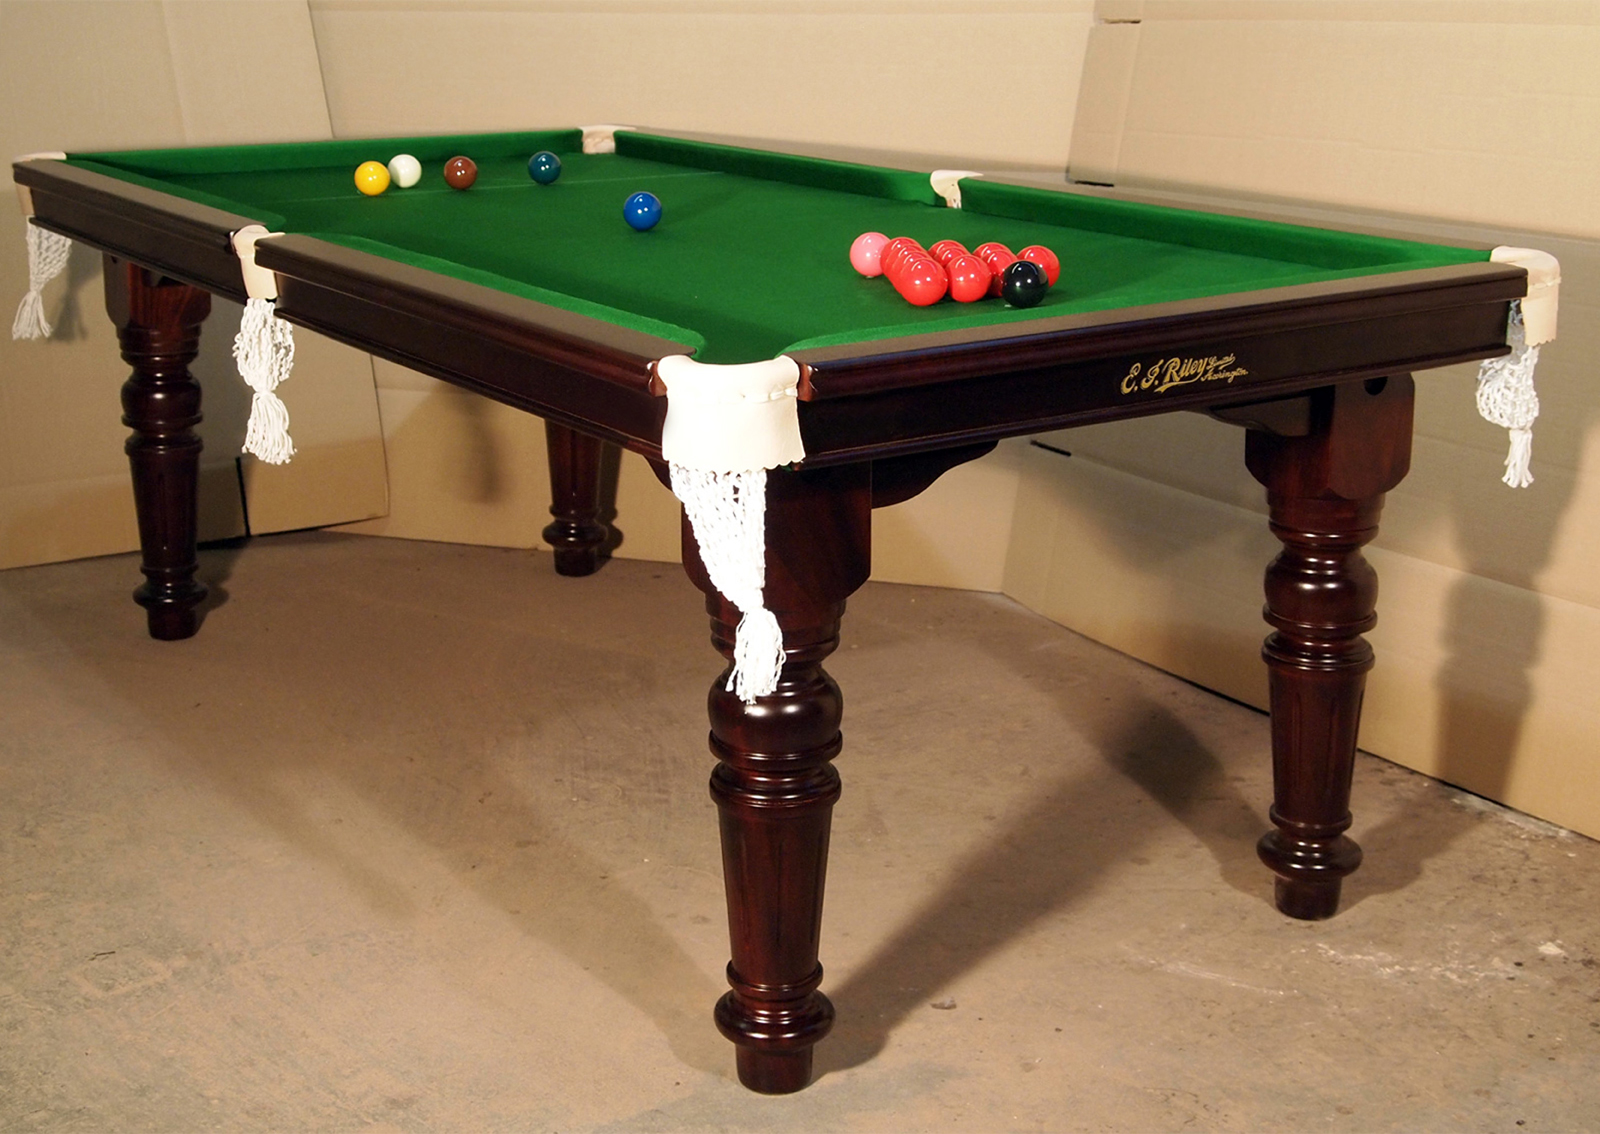 Ft EJ Riley Snooker Dining Table Antique Refurbished Secondhand - 7 foot pool table dining top